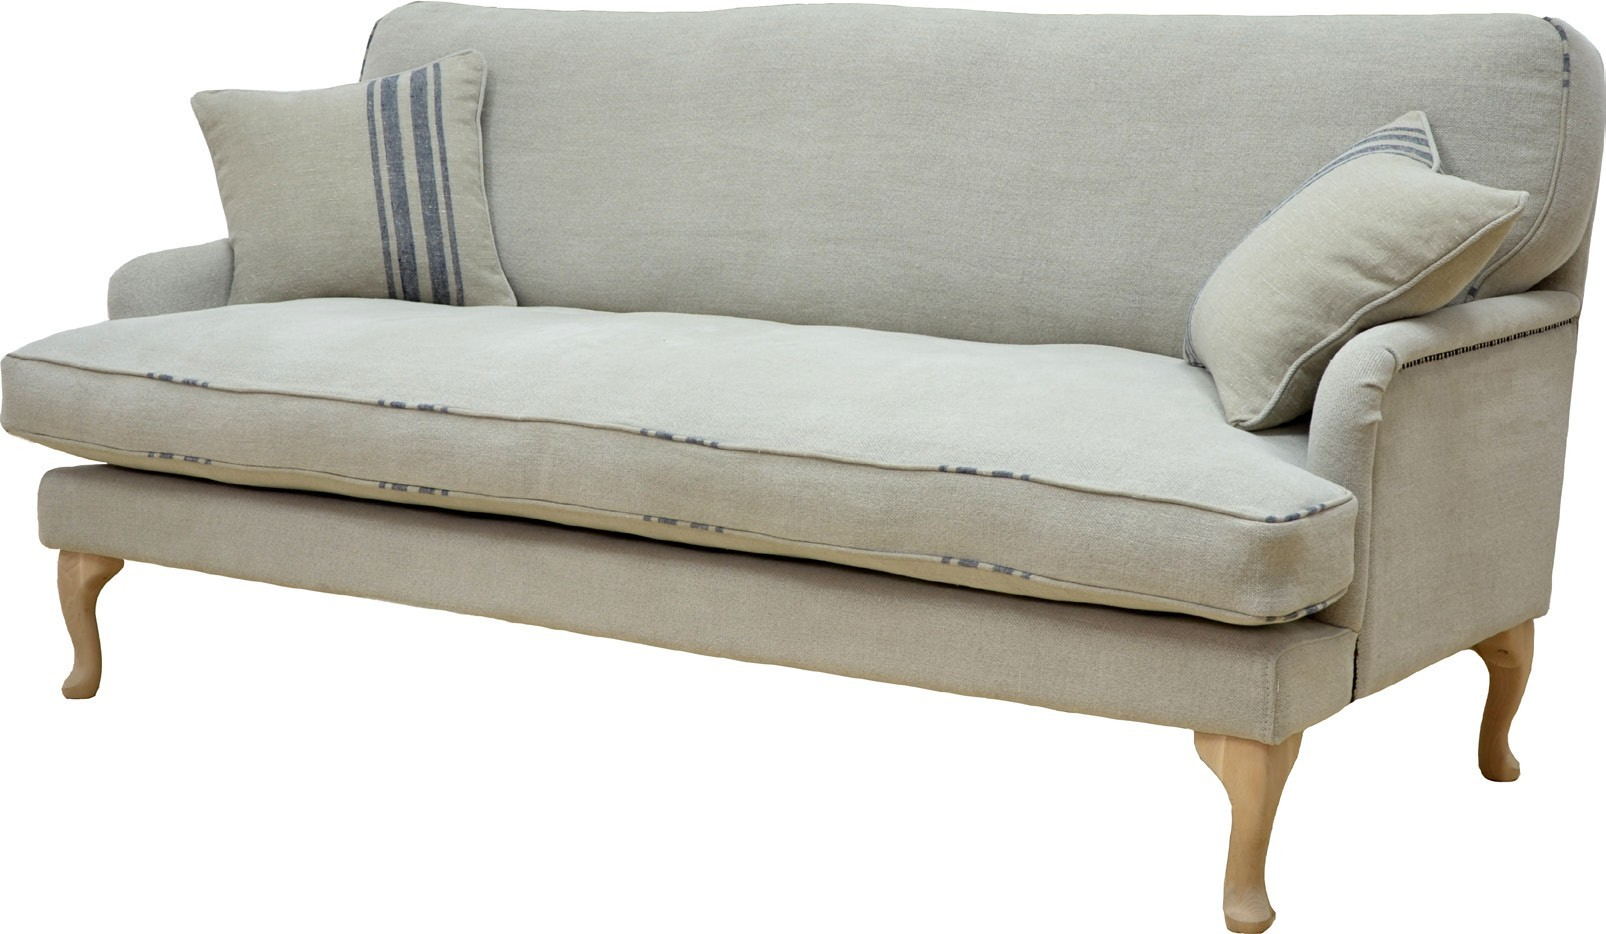 Schmales sofa landhausstil royal primavera hier klicken for Sofa landhausstil